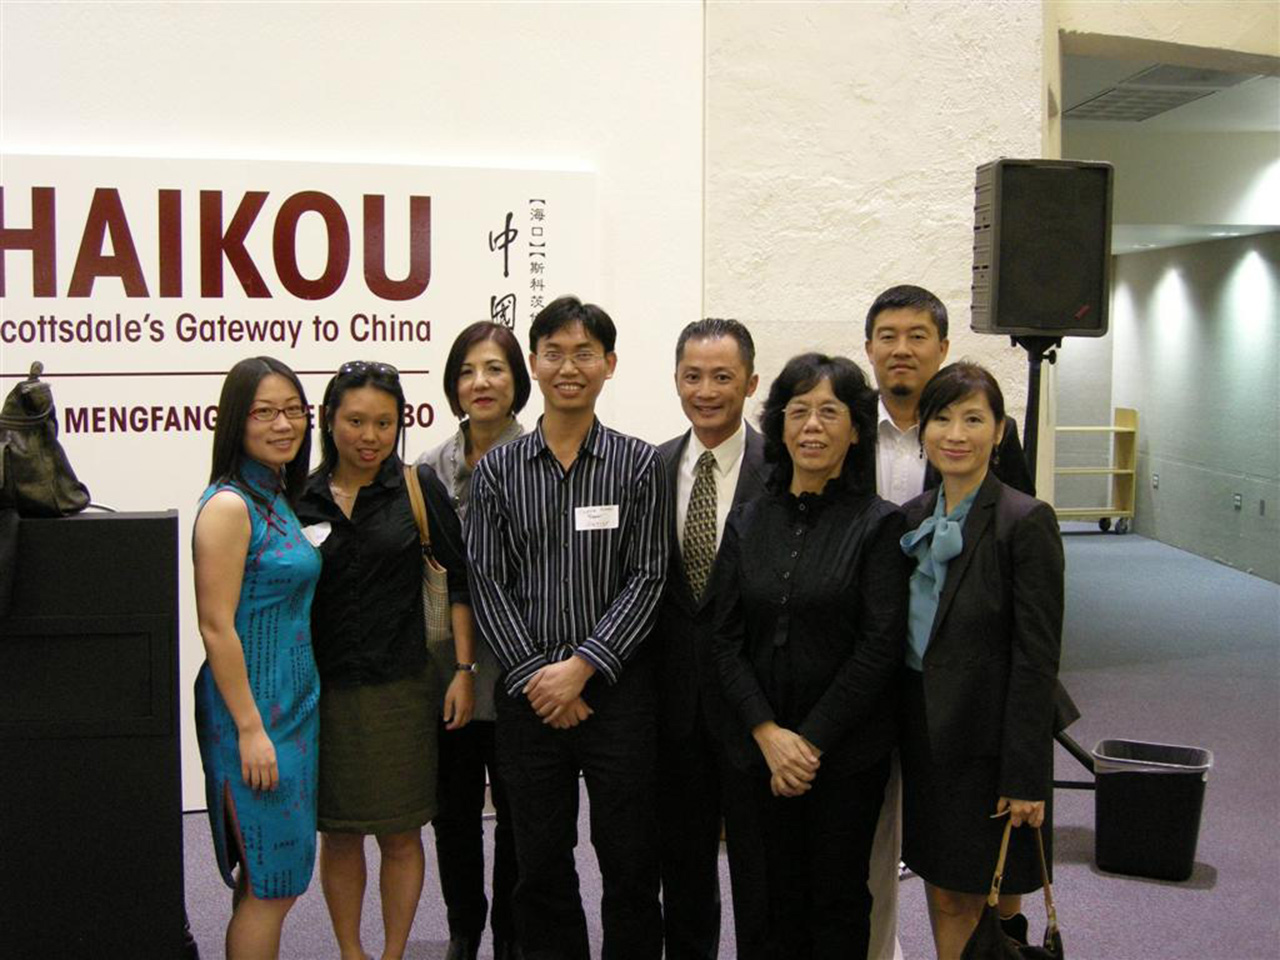 kaikou scottsdale gateway to china group photo